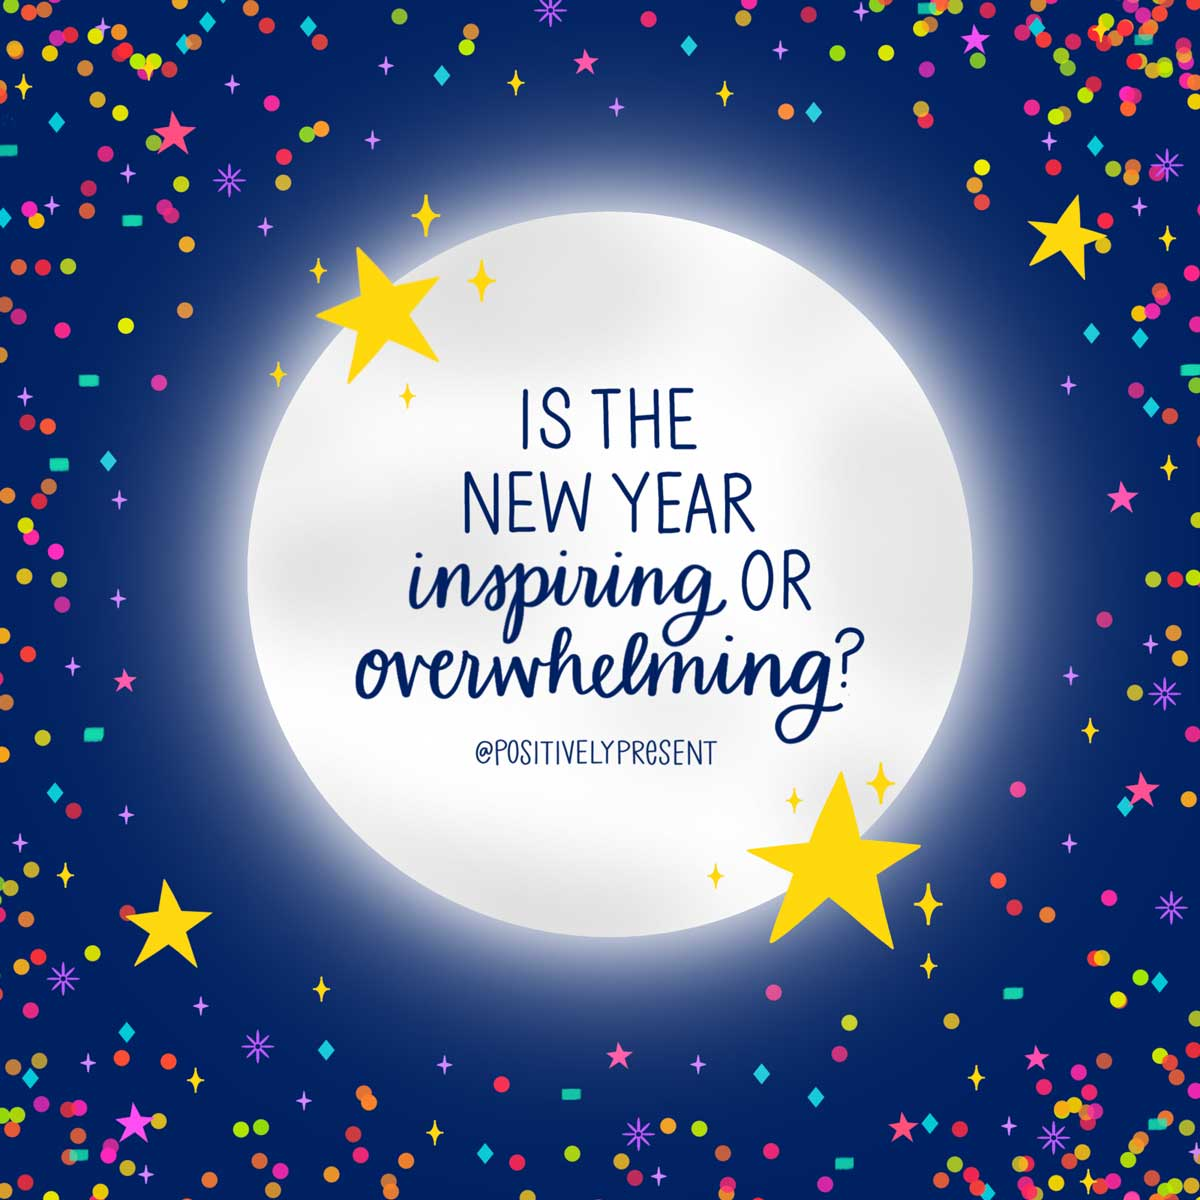 is the new year inspiring or overwhelming quote on confetti background.